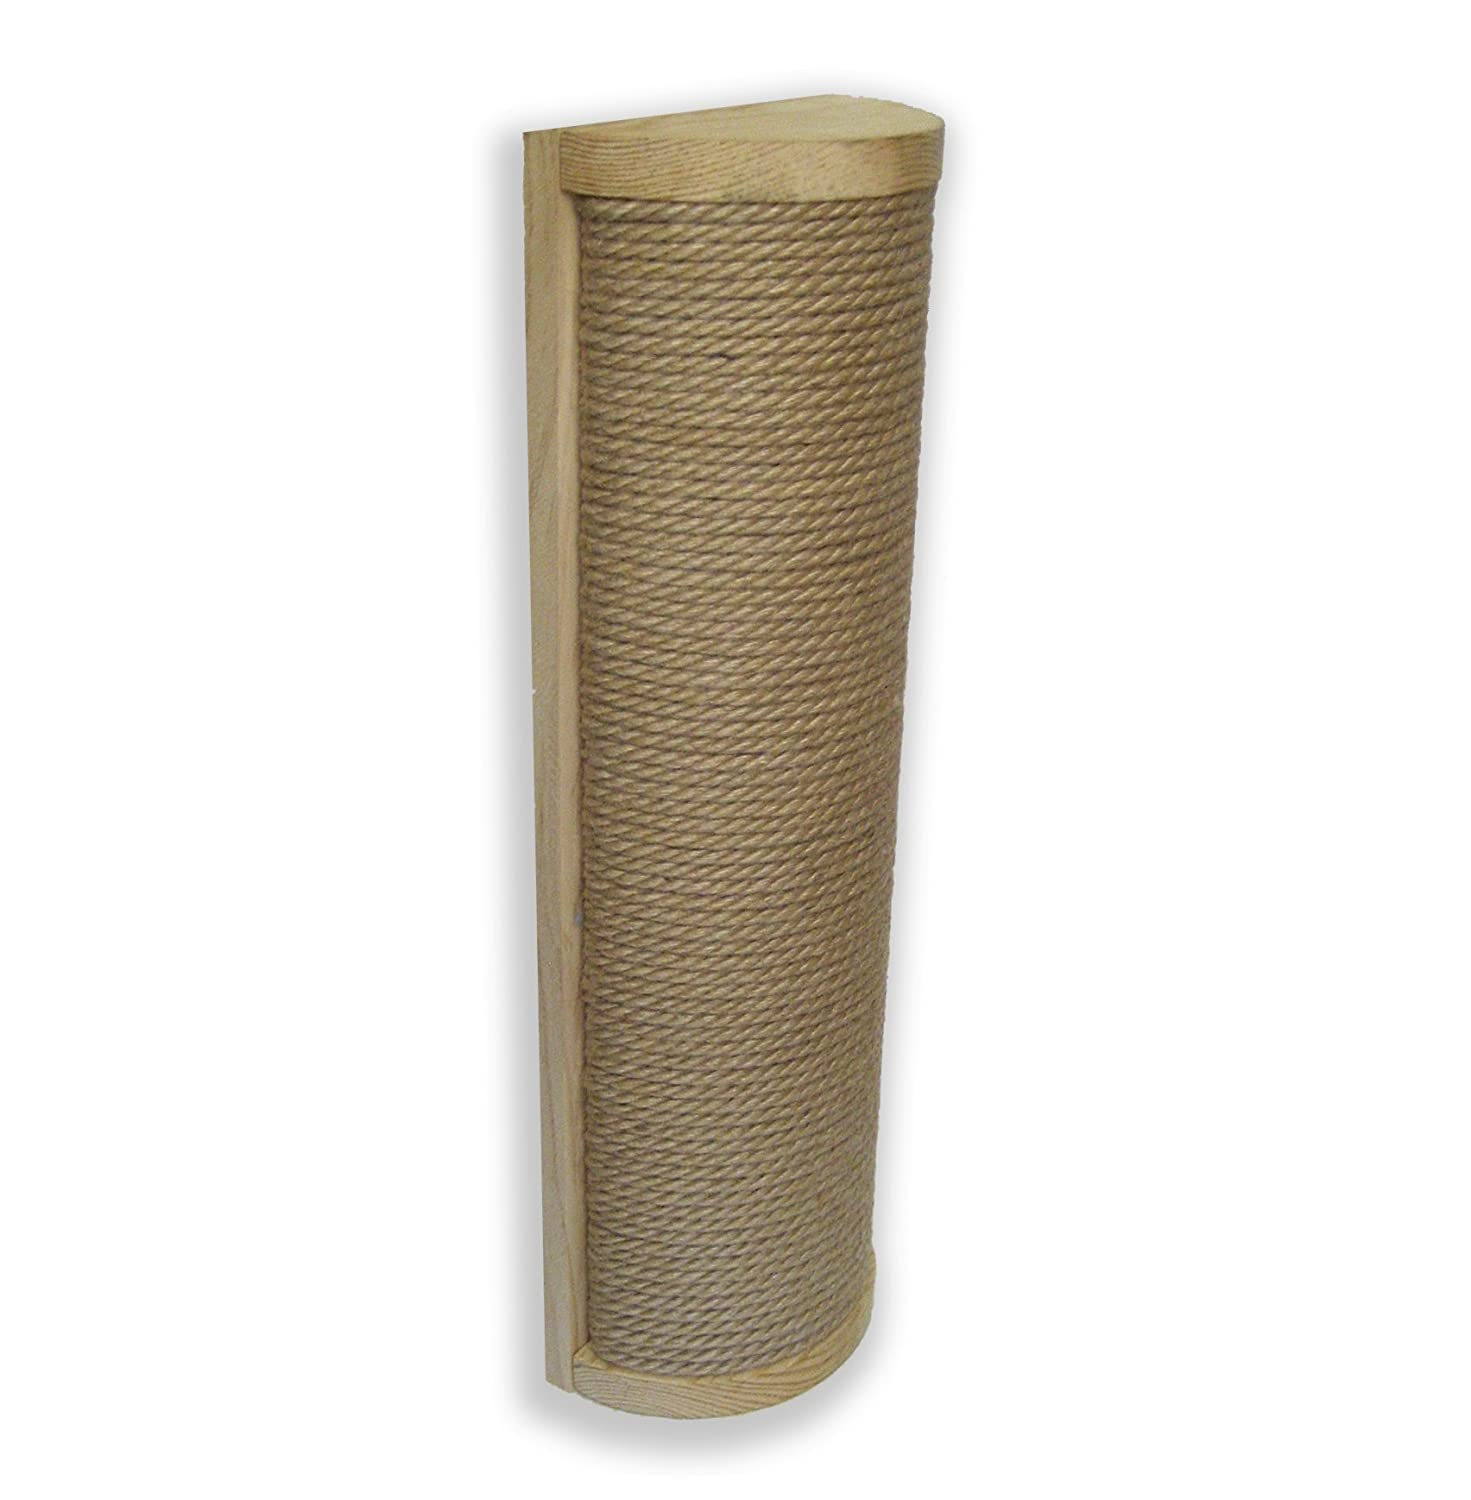 Wall Mounted Cat Scratching Post, Save Floor Space, Reduce Clutter, Solid Wood Cat Furniture Scratcher with Sisal Rope